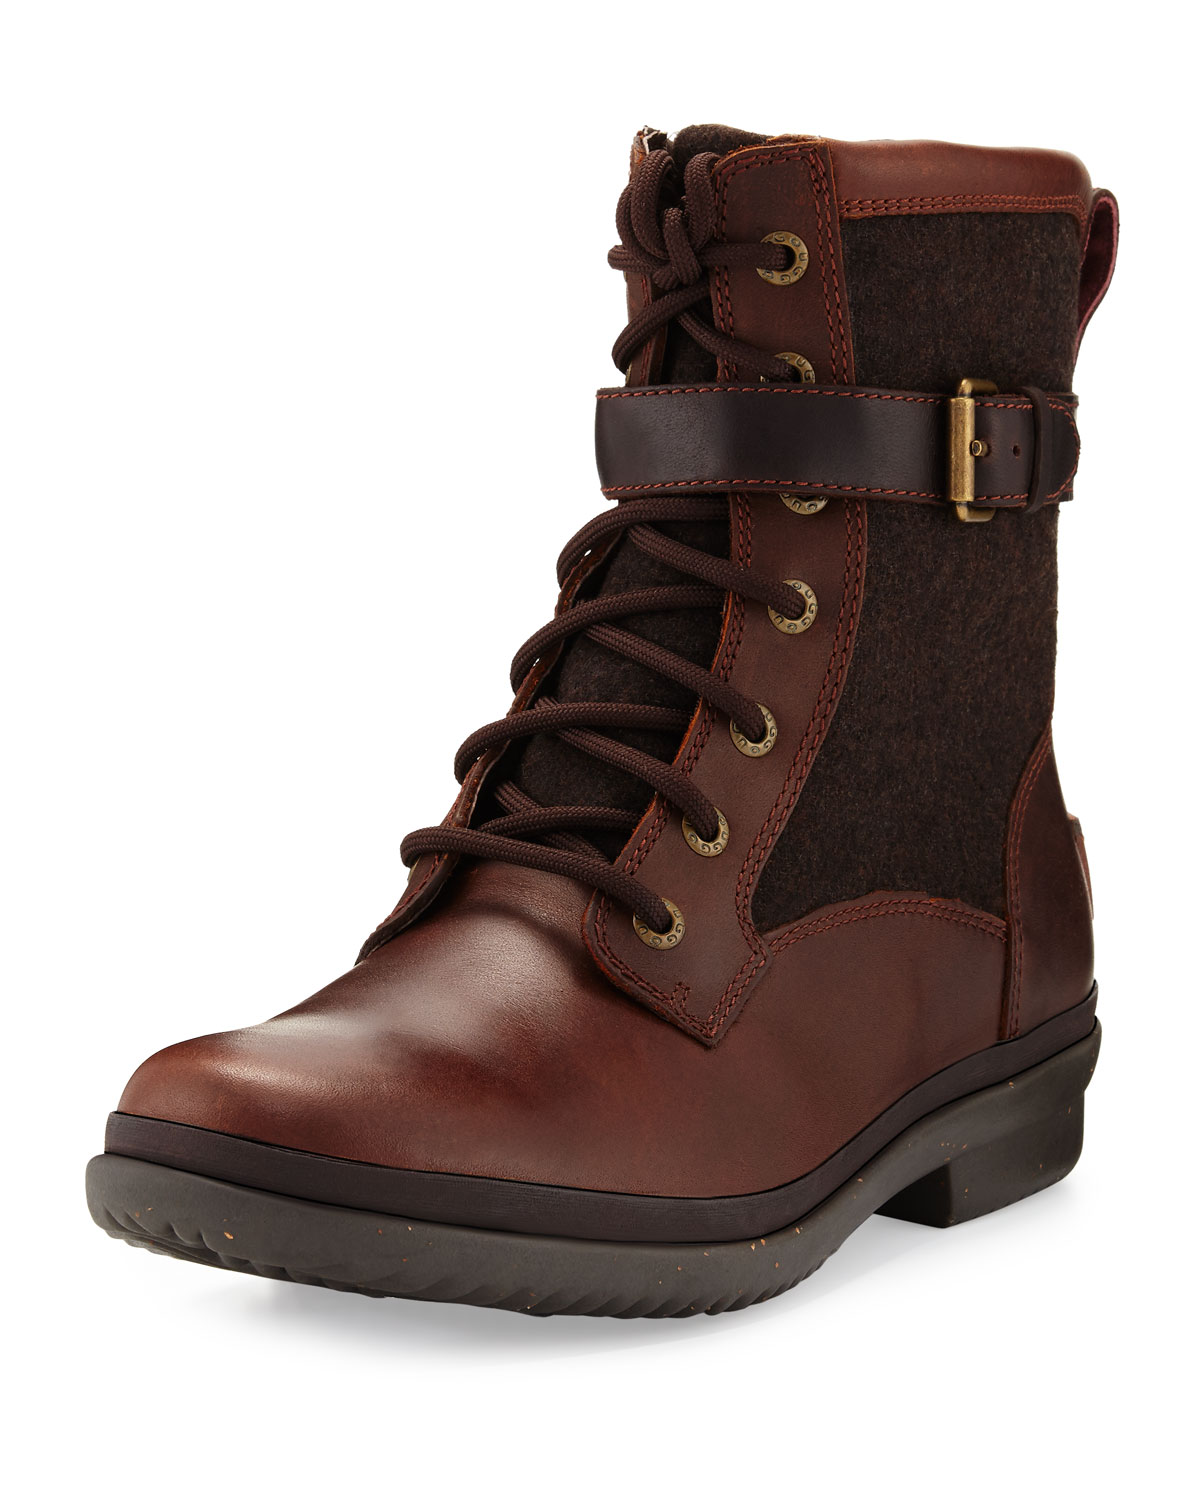 46ed260a54c Kesey Waterproof Combat Boot, Chestnut